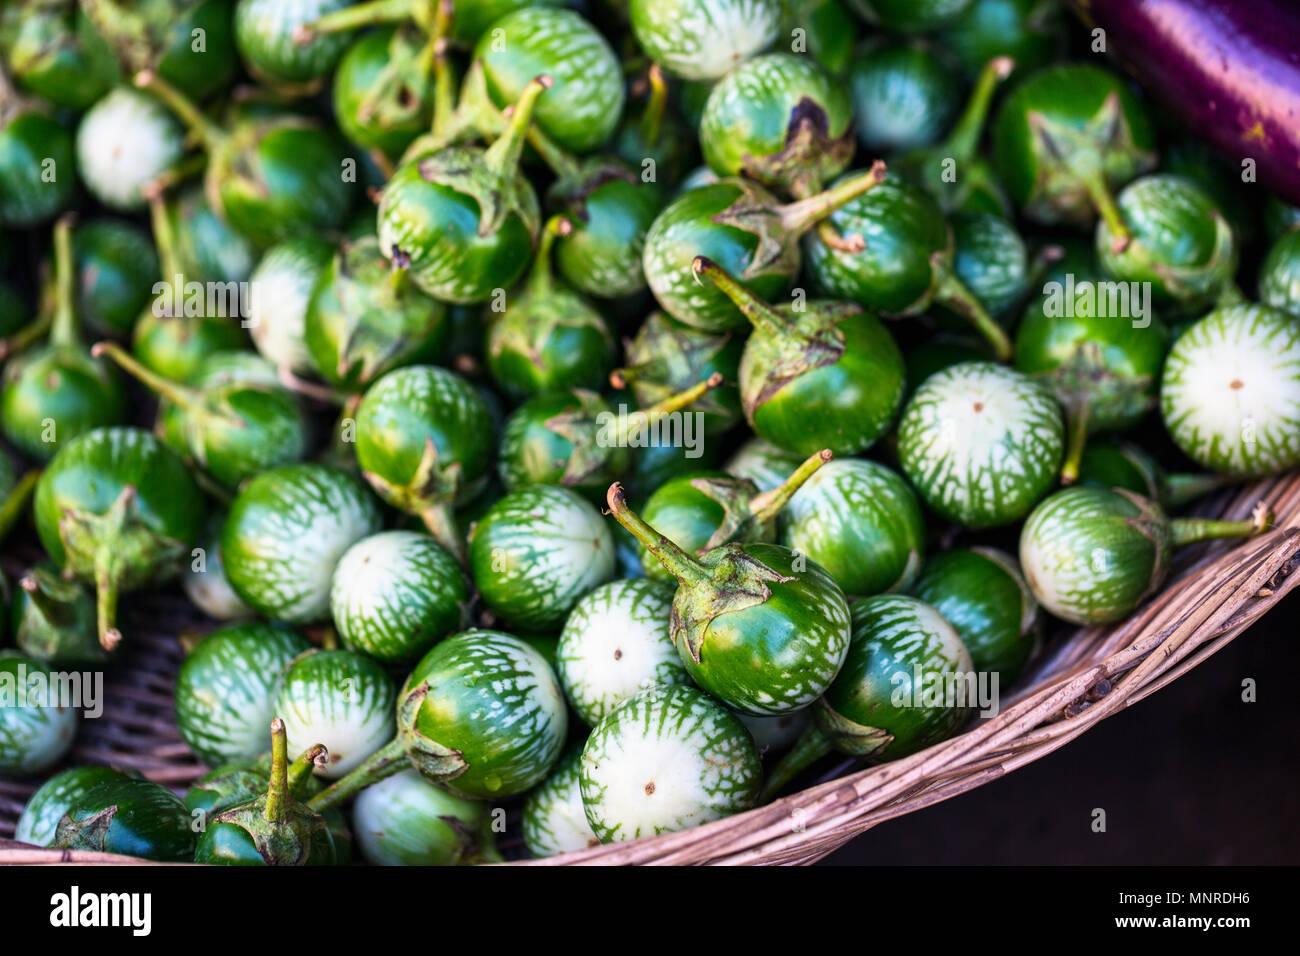 Assortment of fresh green fruits on market tray in Siem Reap Cambodia - Stock Image